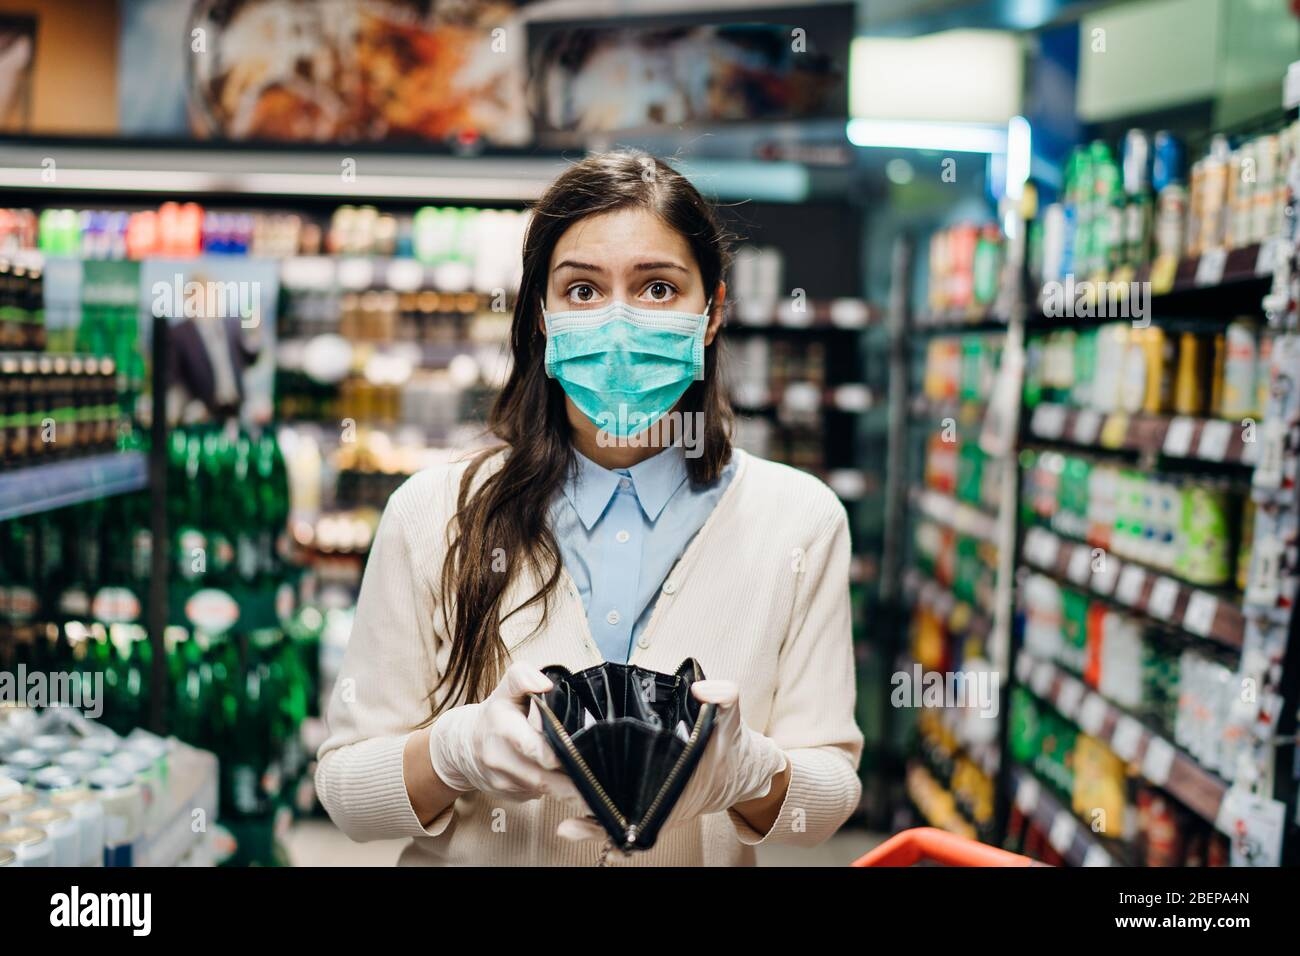 Stressed woman with mask shopping in grocery store with an empty wallet.Bankruptcy/recession.Covid-19 quarantine lockdown impact.Unemployed person in Stock Photo